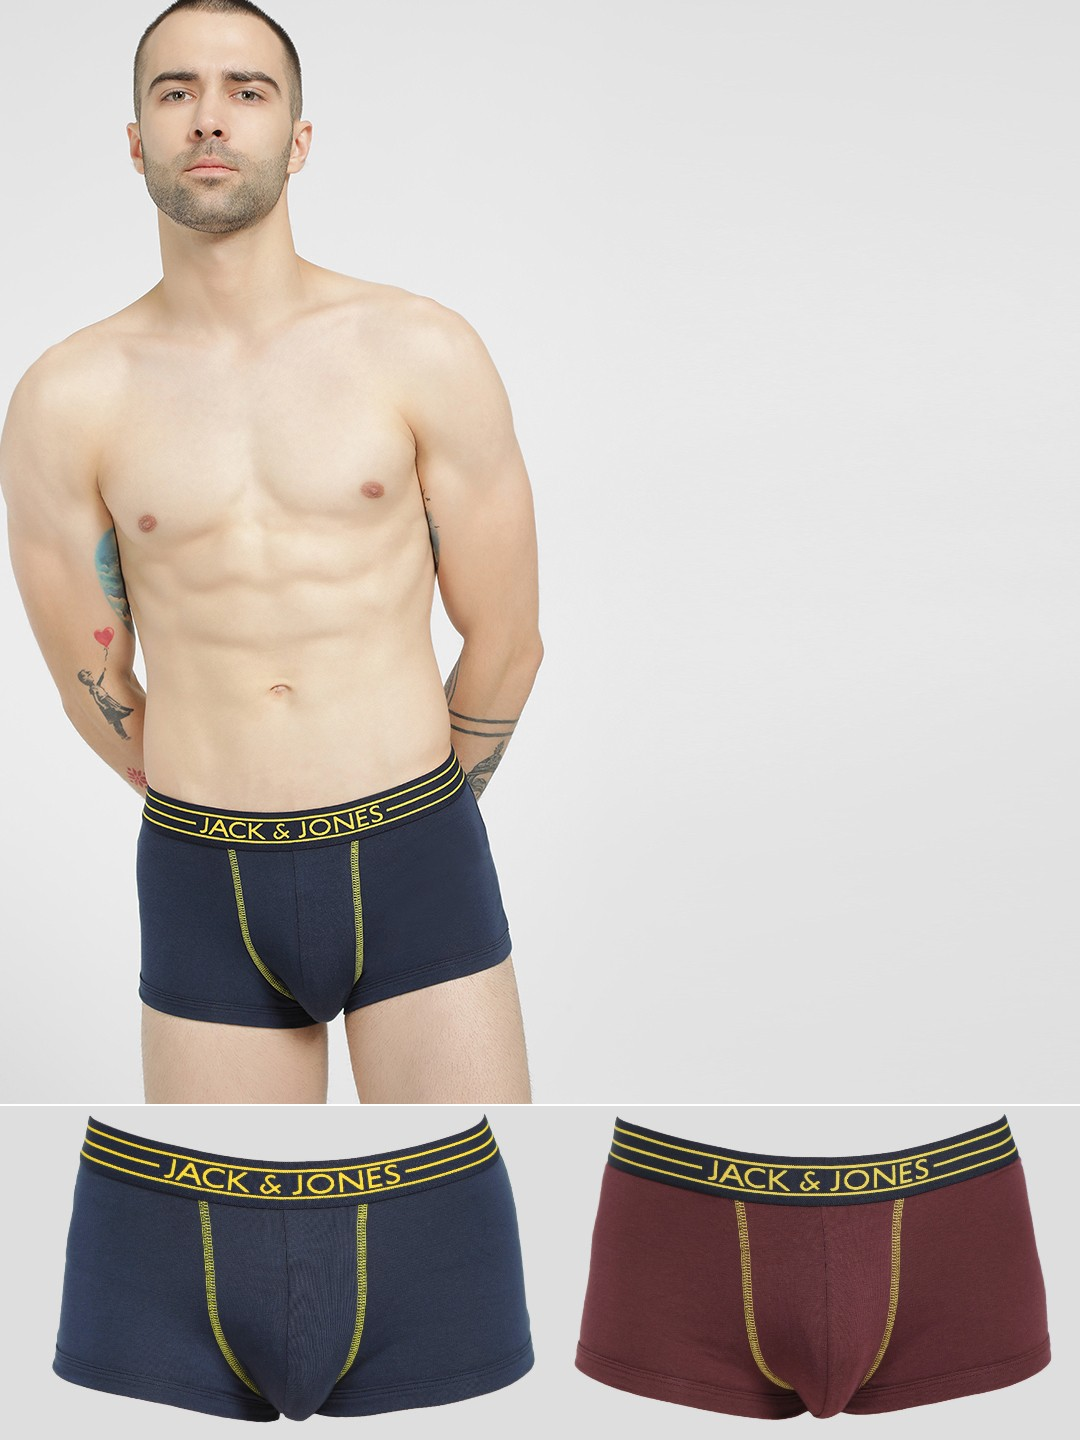 Jack & Jones Multi Brazilian Trunks (Pack Of 2) 1